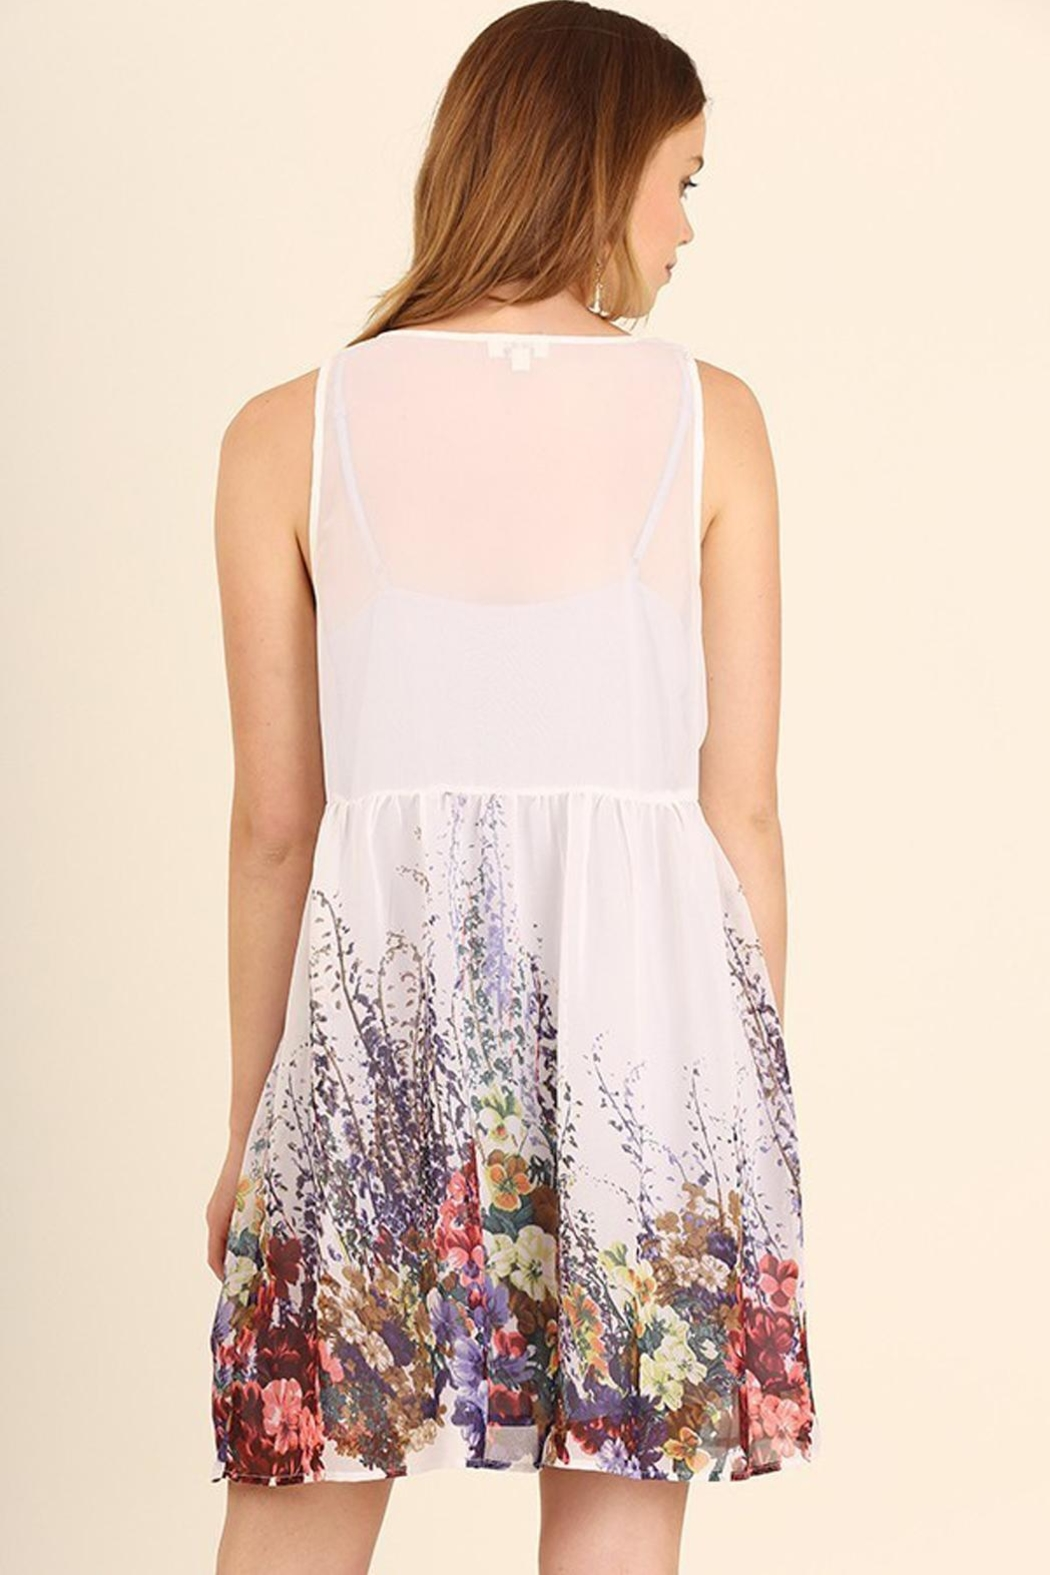 Umgee USA White Floral Dress - Front Full Image